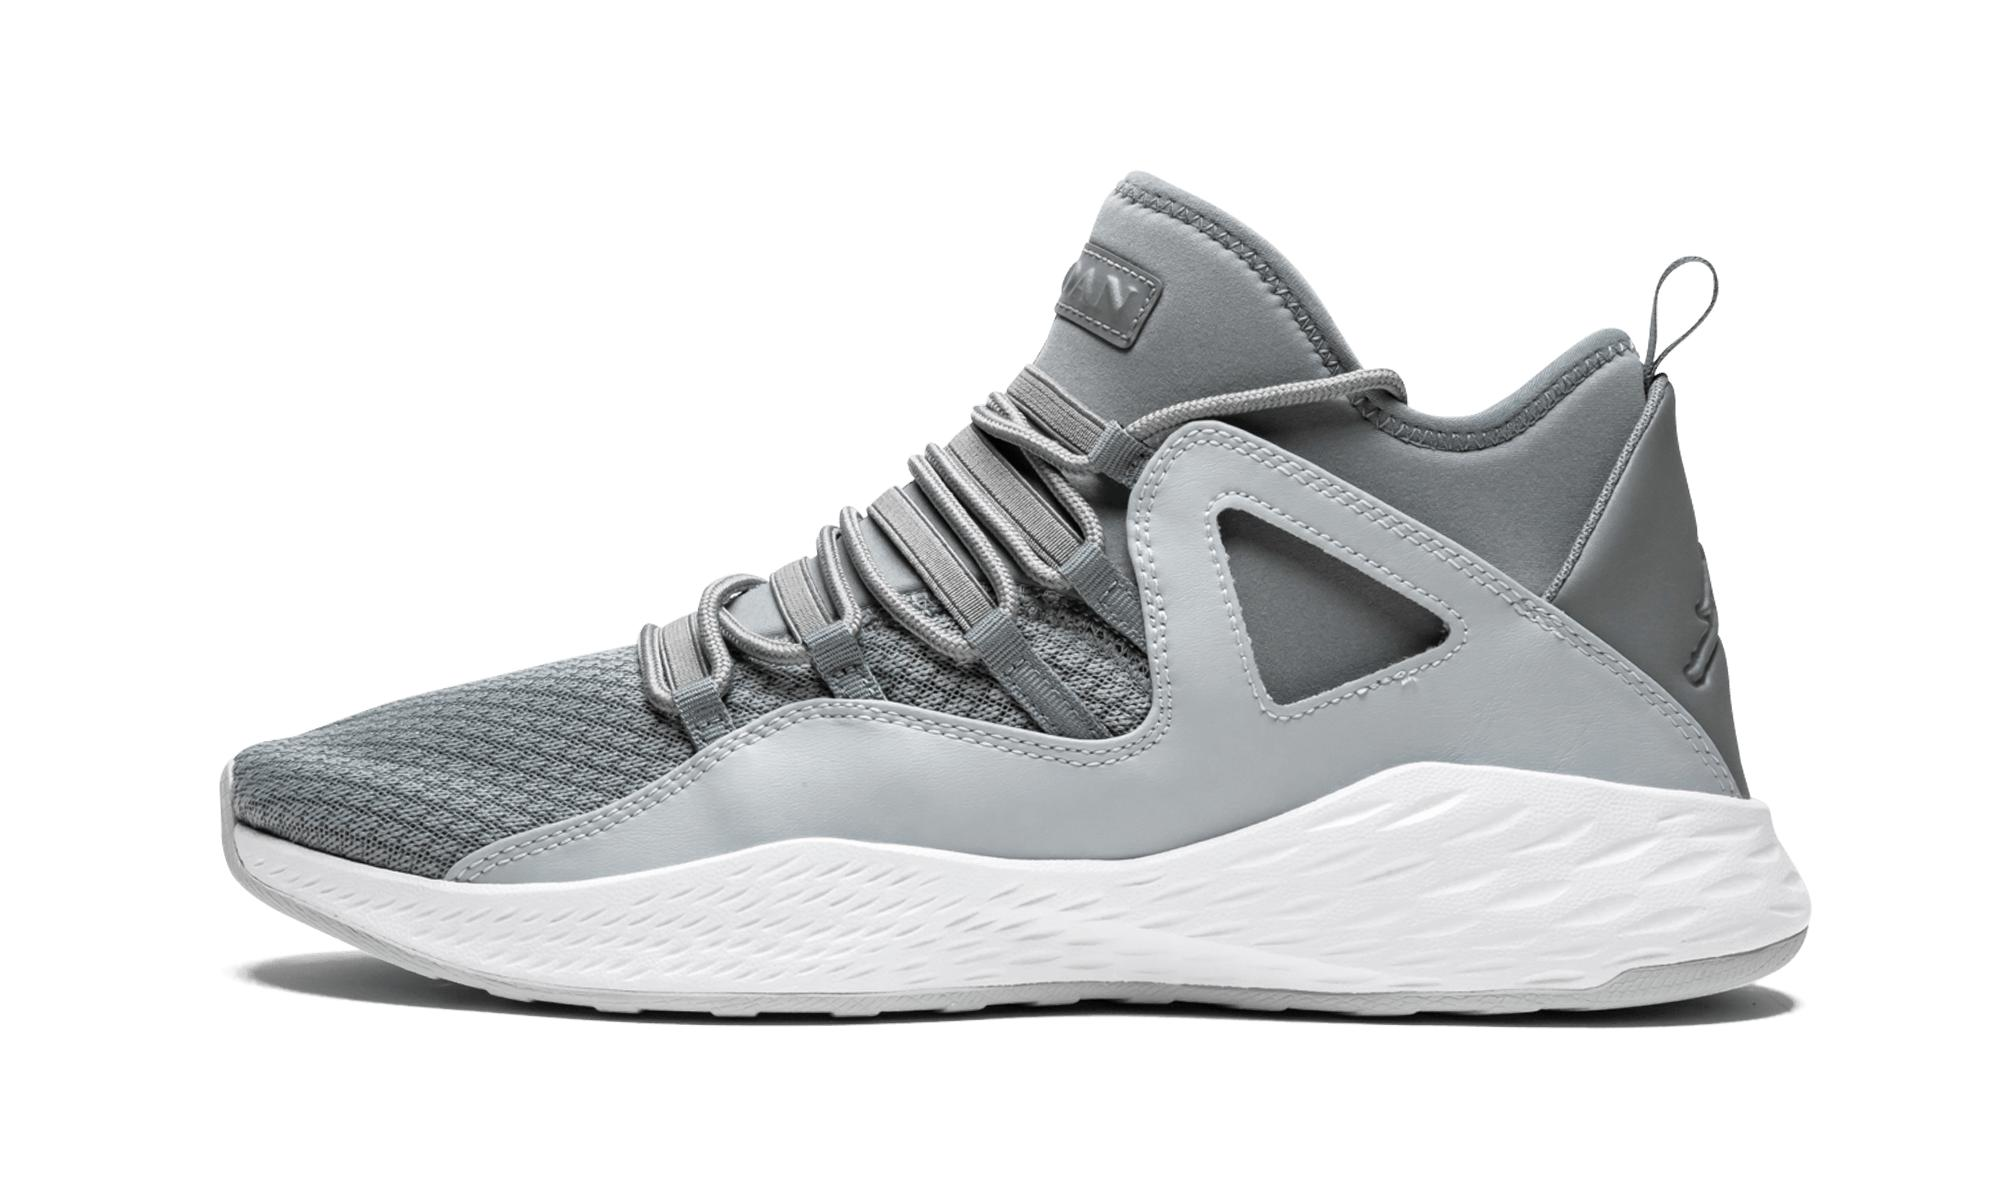 adaa51f8bb45 Lyst - Nike Formula 23 in Gray for Men